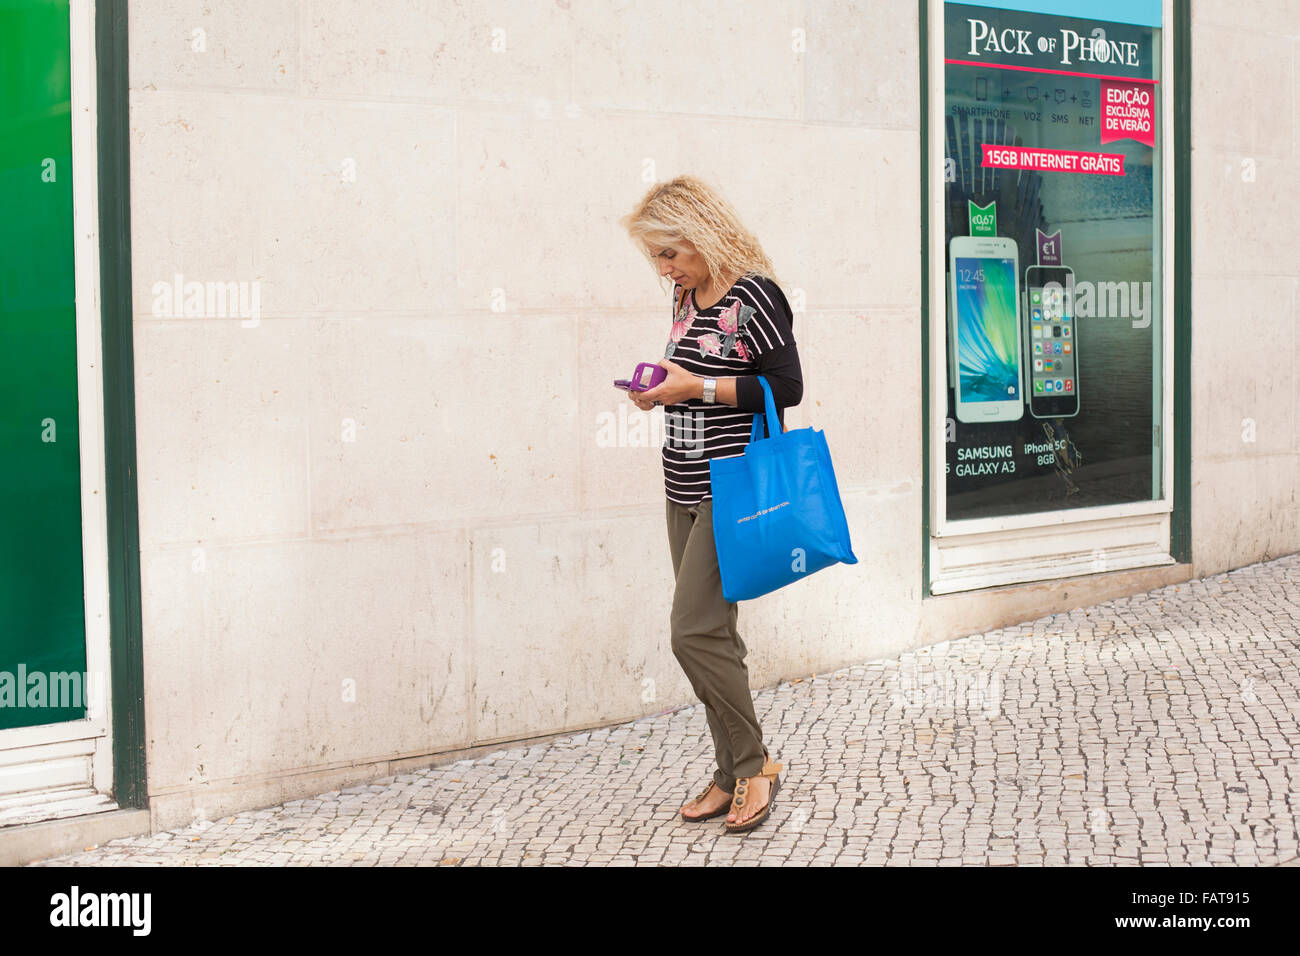 Woman looking at cell phone. - Stock Image